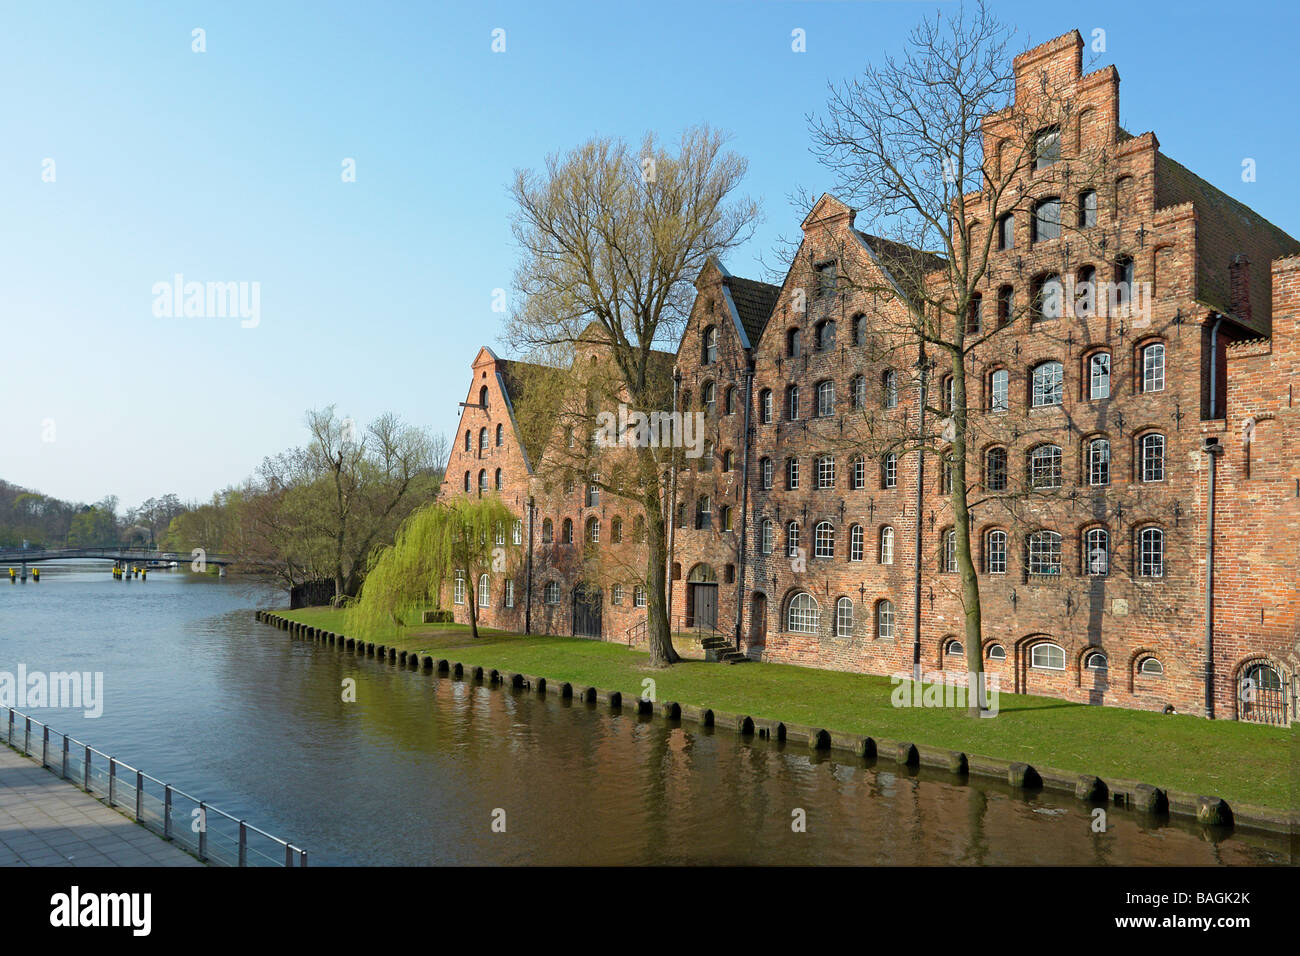 Salt store houses in Lubeck Germany located adjacent viewed from bridge over Trave - Stock Image